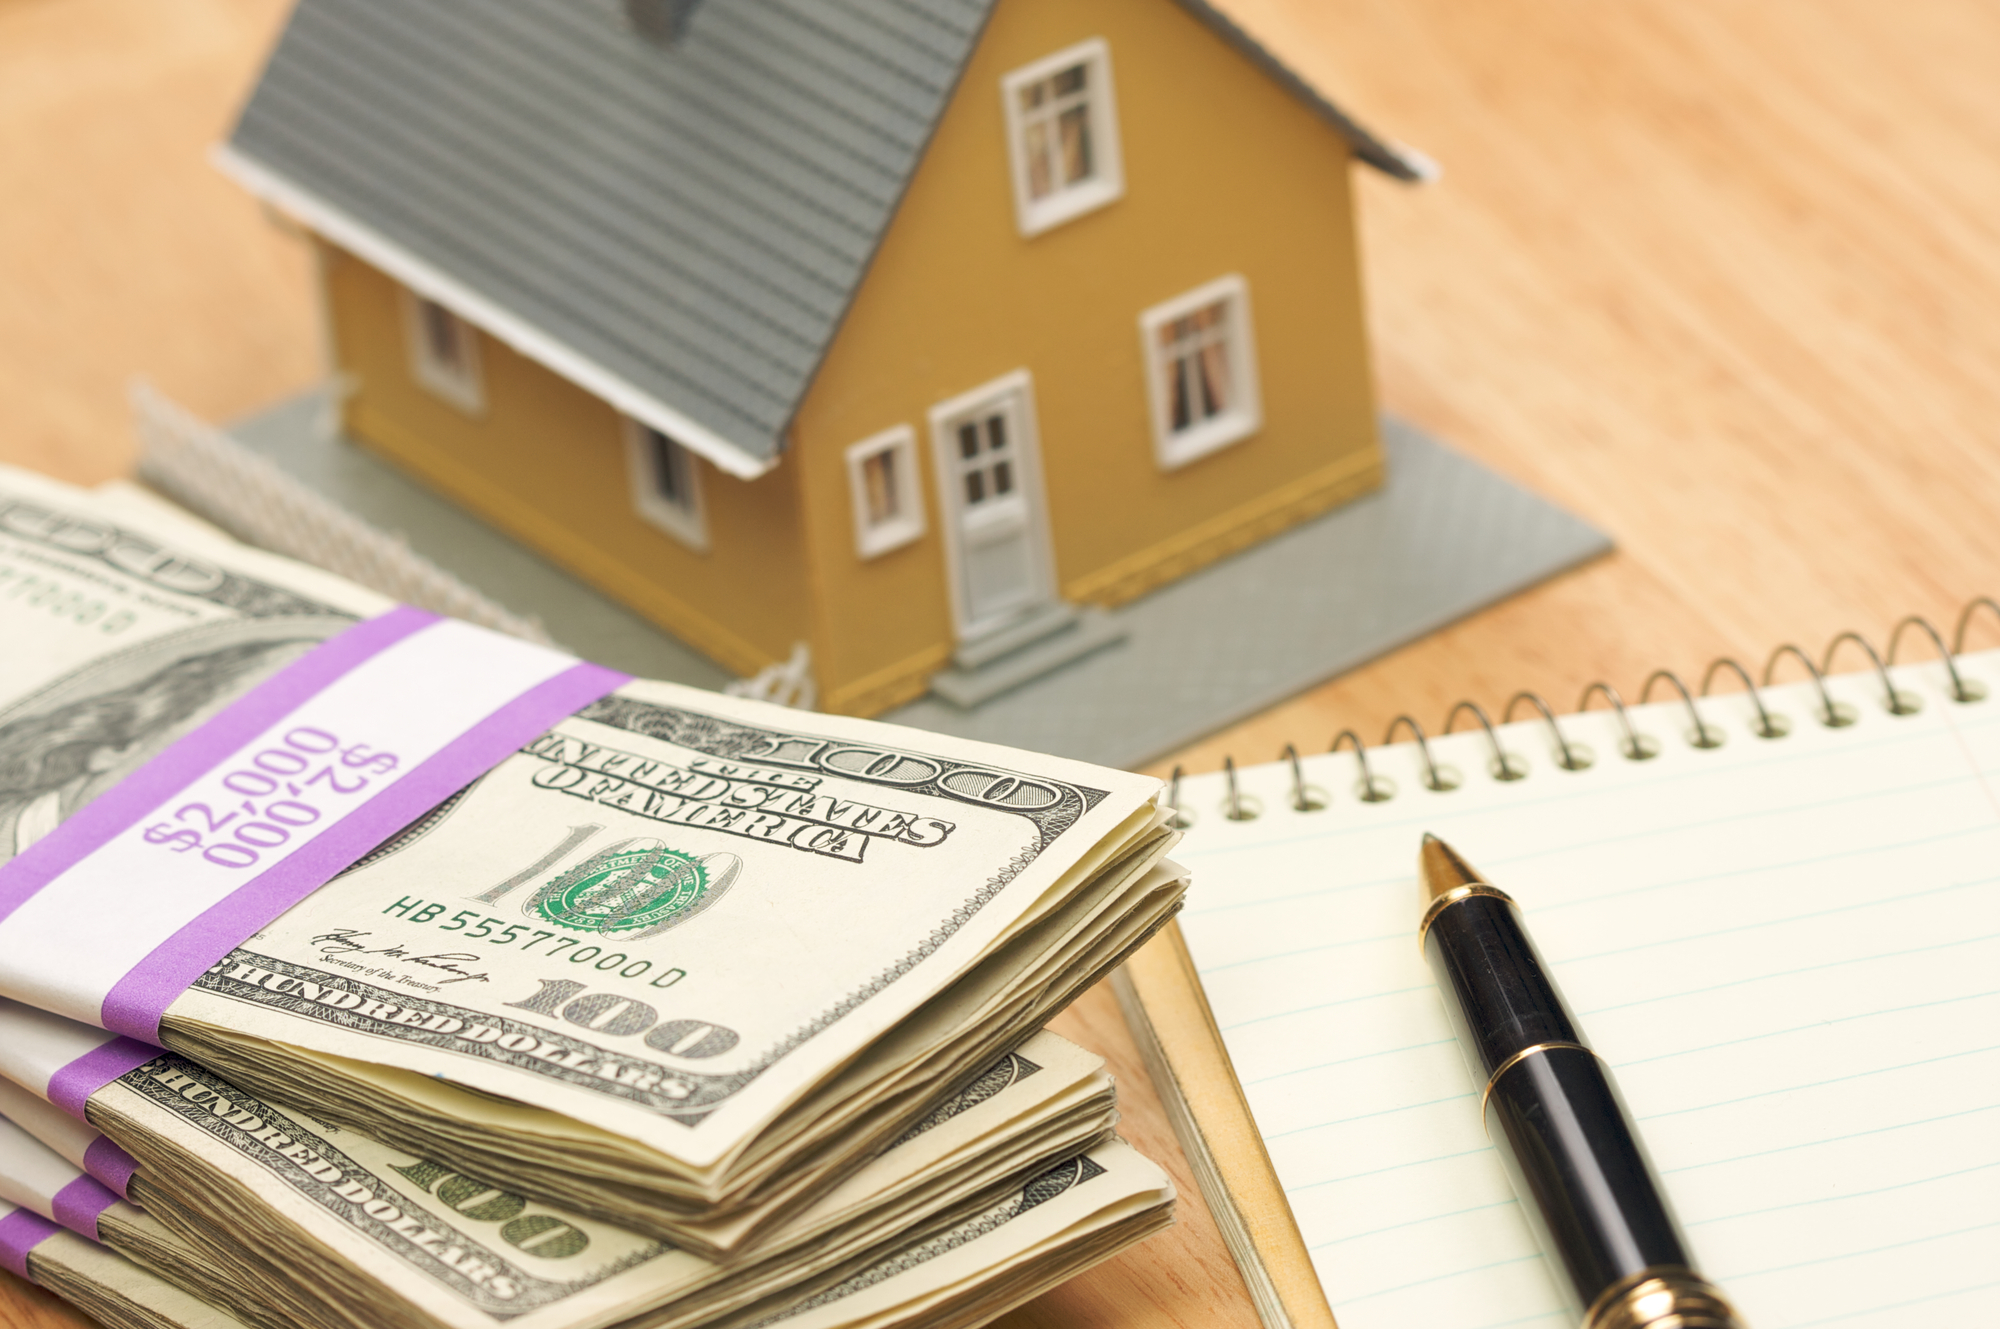 House, Money, Pad of Paper and Pen